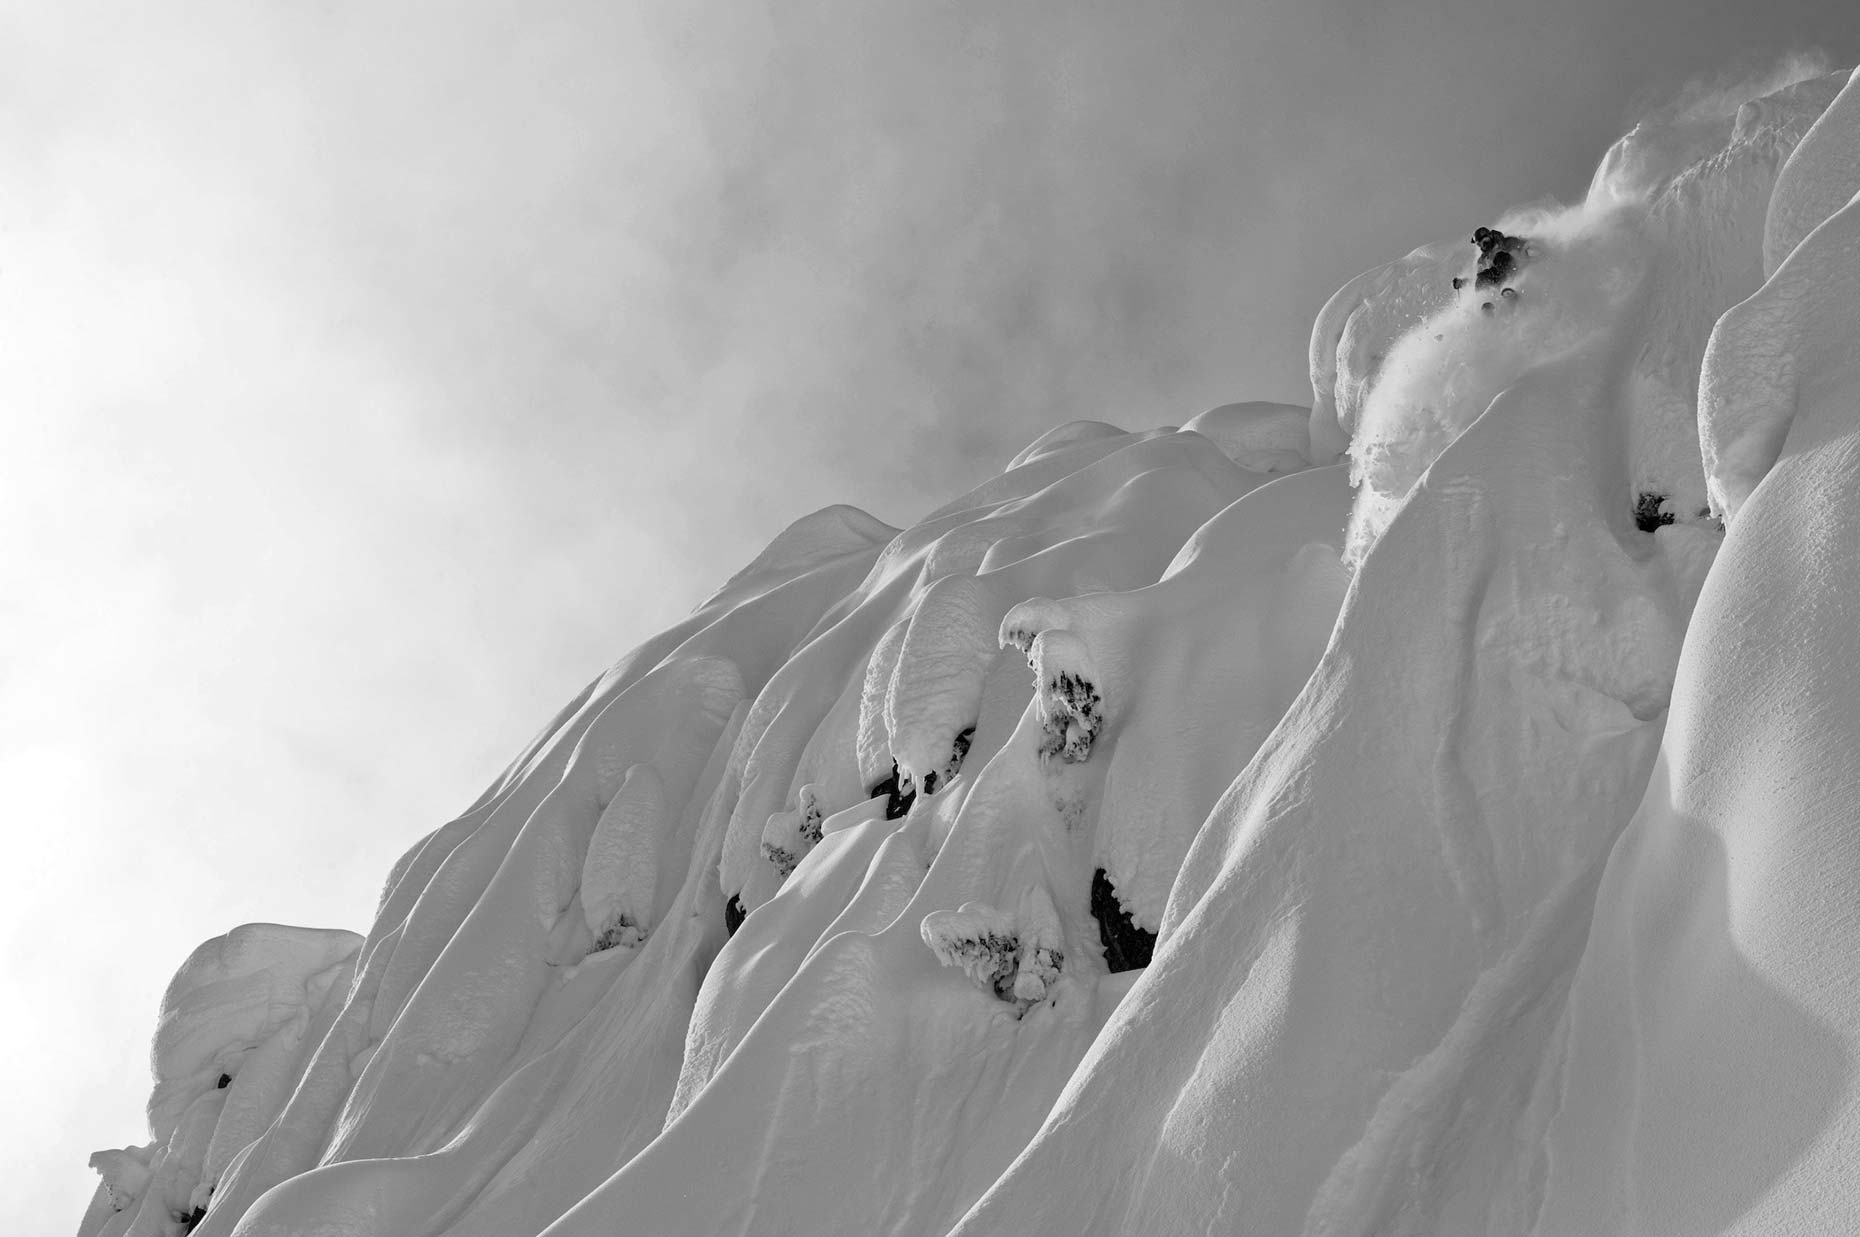 Ian-Coble-Skiing-Washington-Backcountry_Powder-Magazine